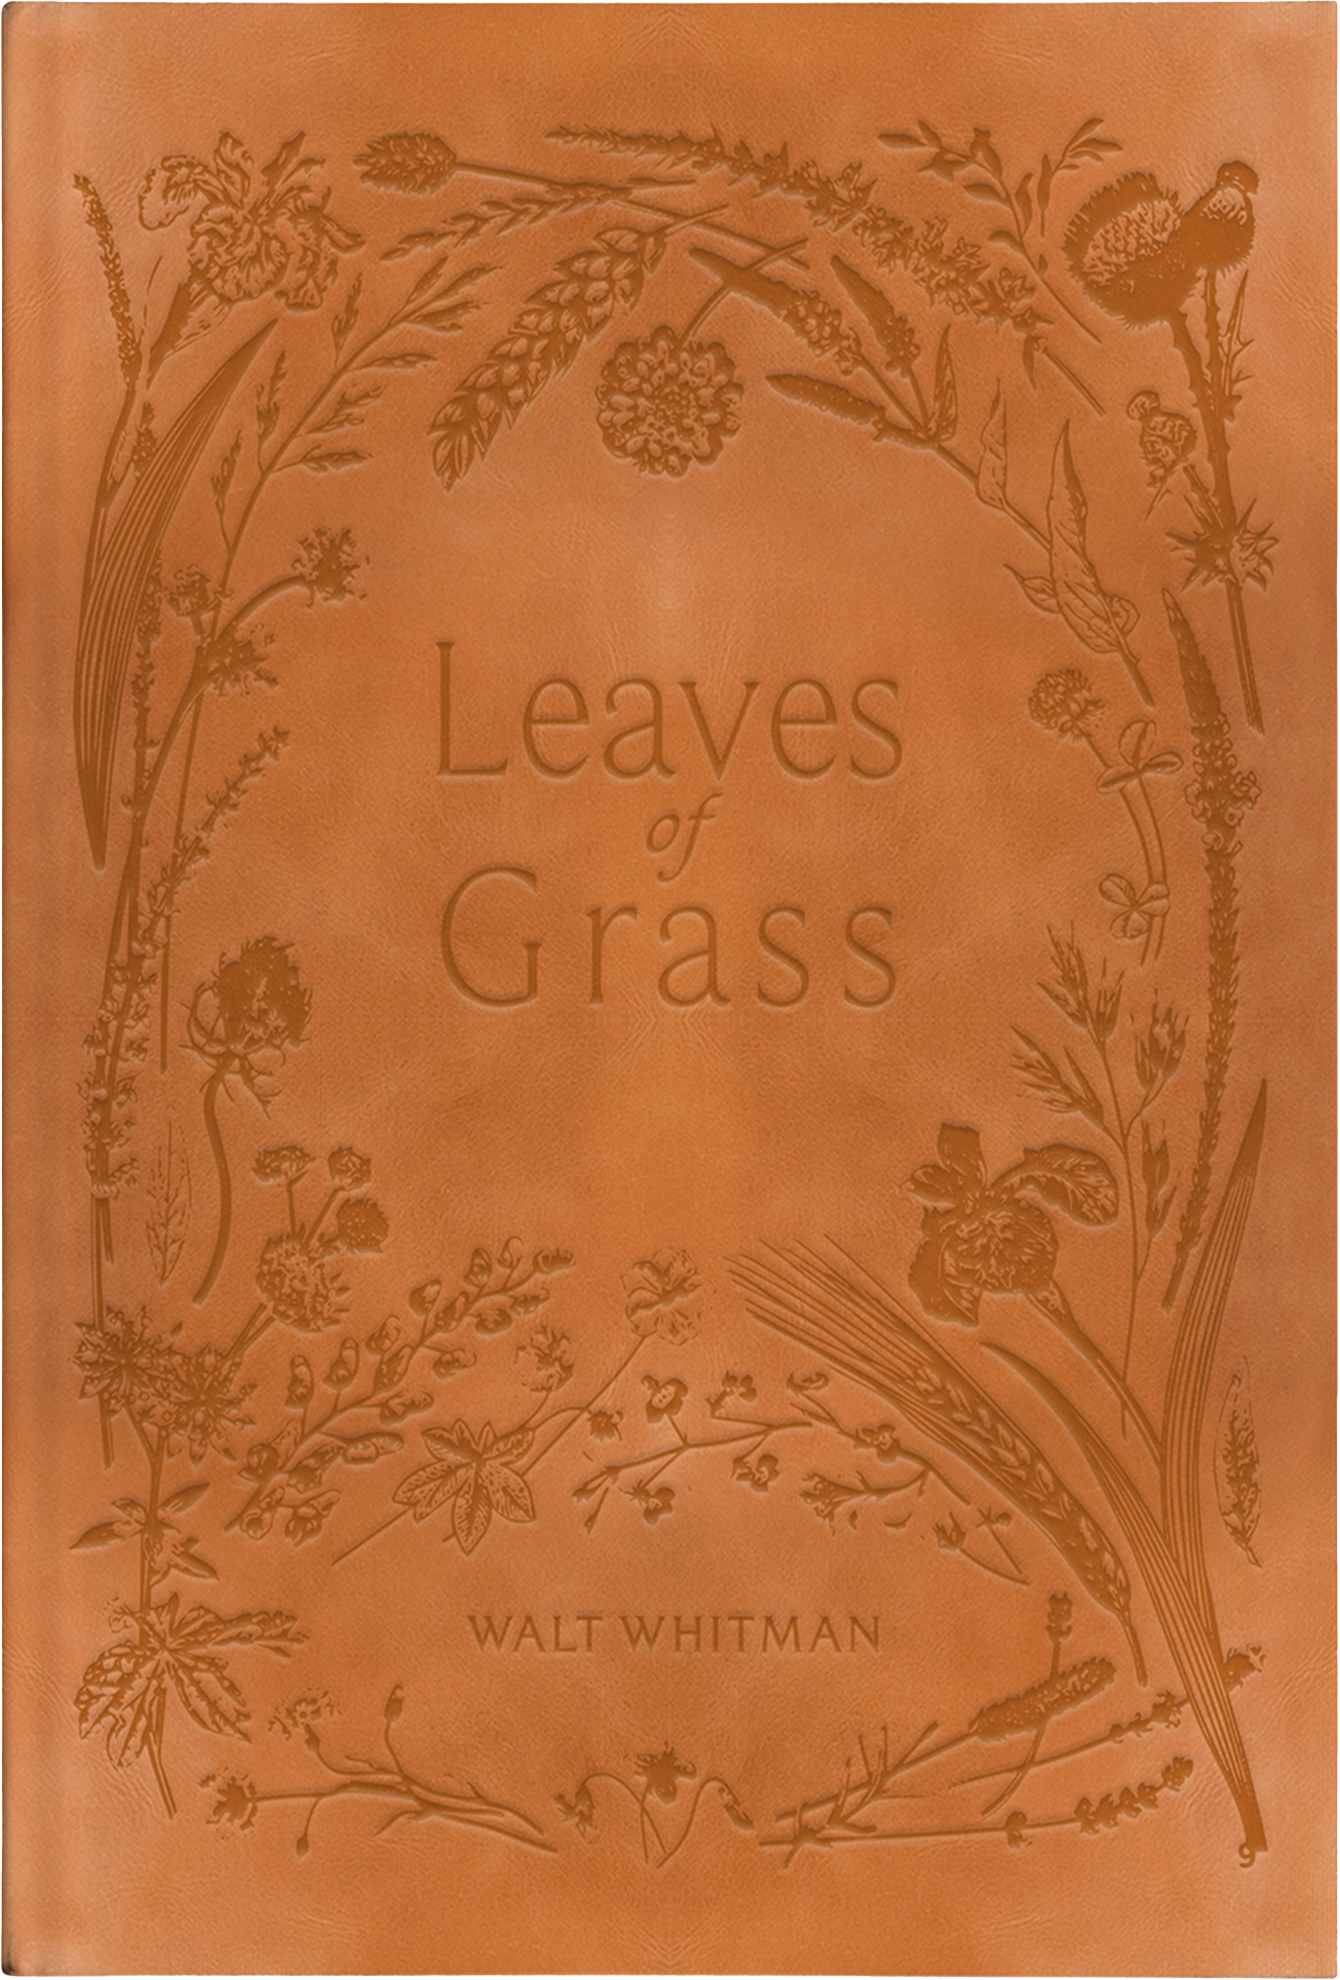 8. Leaves of Grass